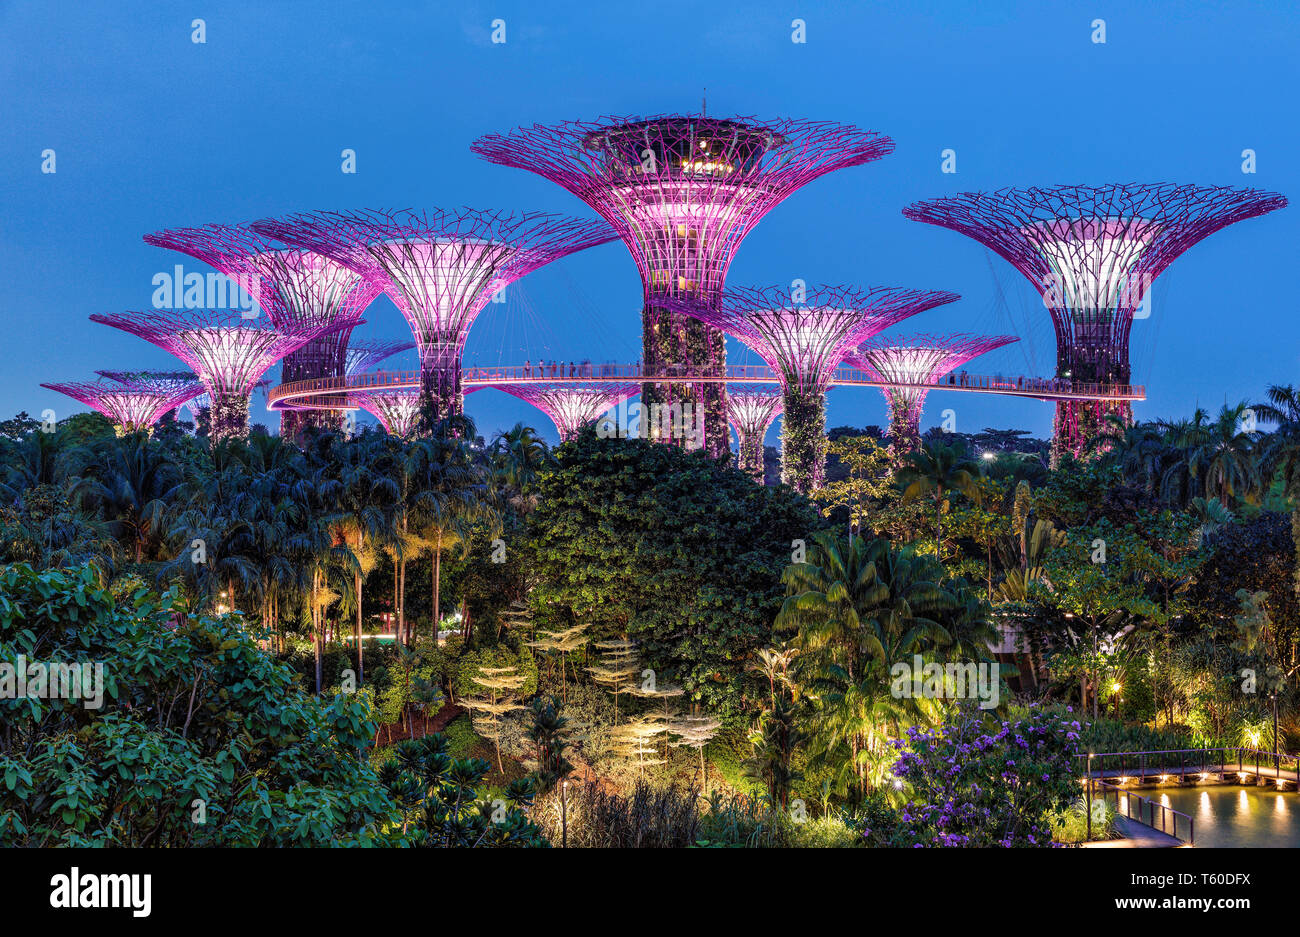 The Super Trees at Gardens By The Bay, Singapore. Stock Photo